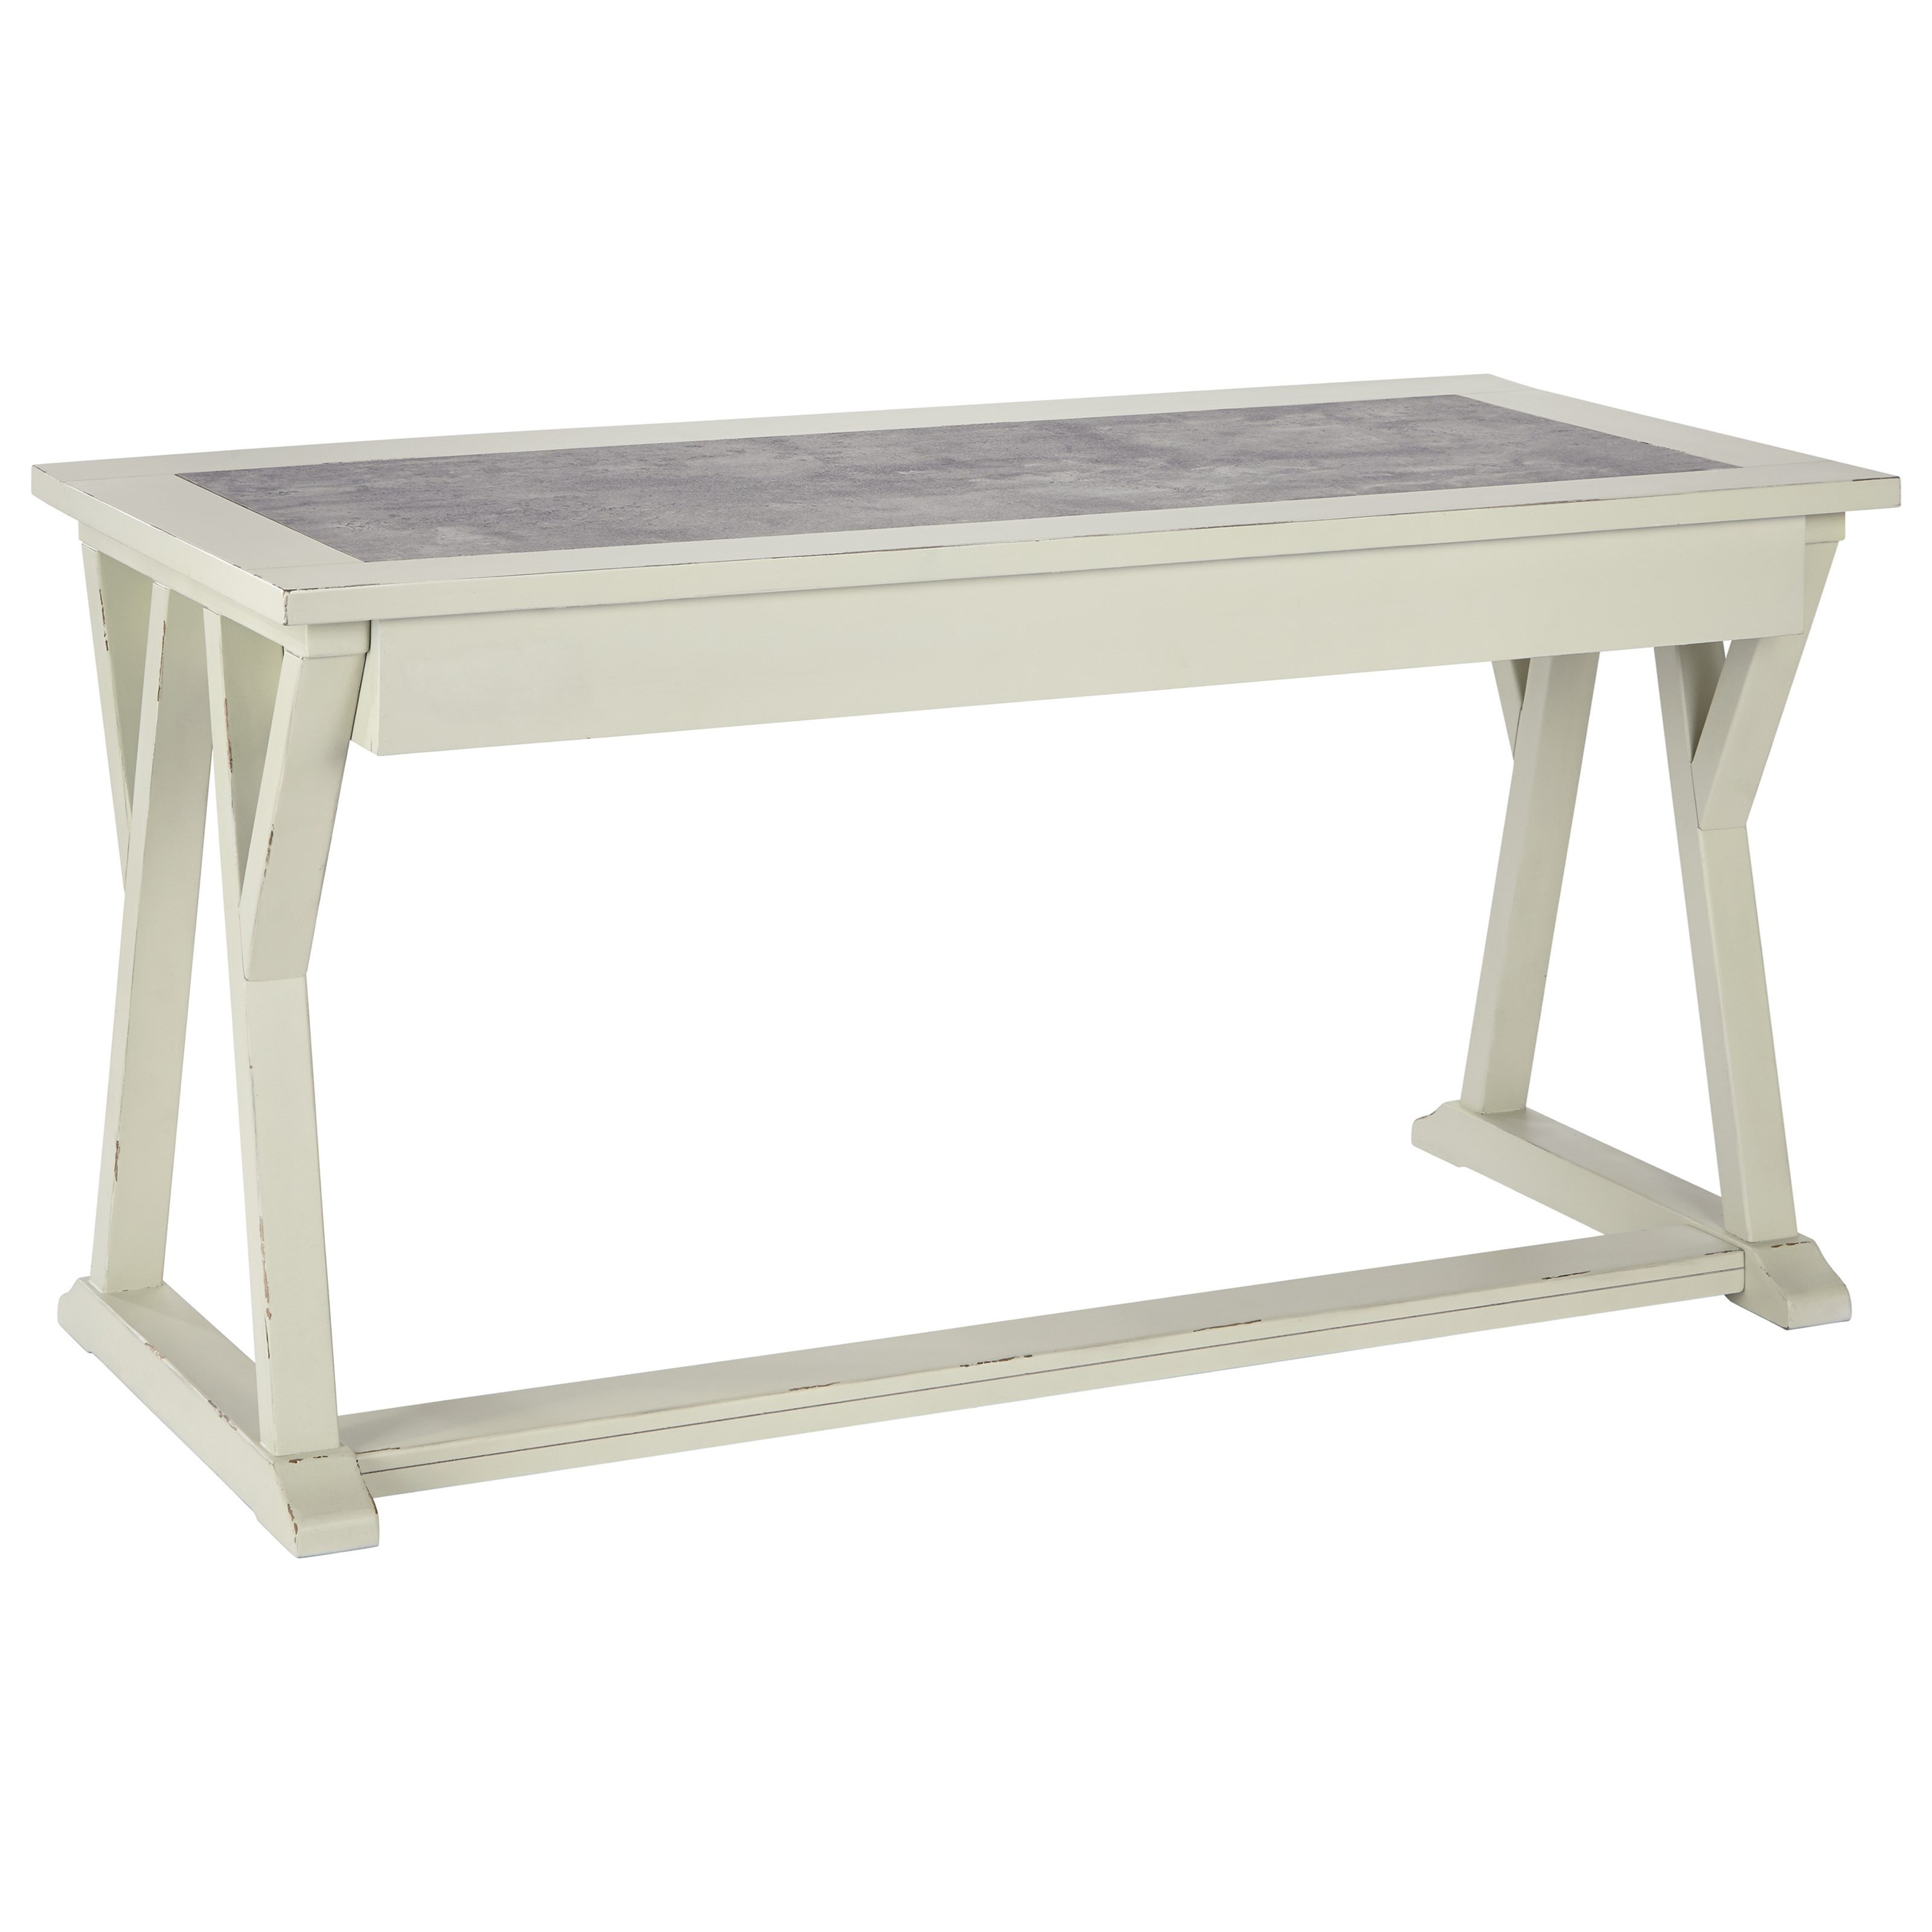 Jonileene Home Office Large Leg Desk by Signature Design by Ashley at VanDrie Home Furnishings